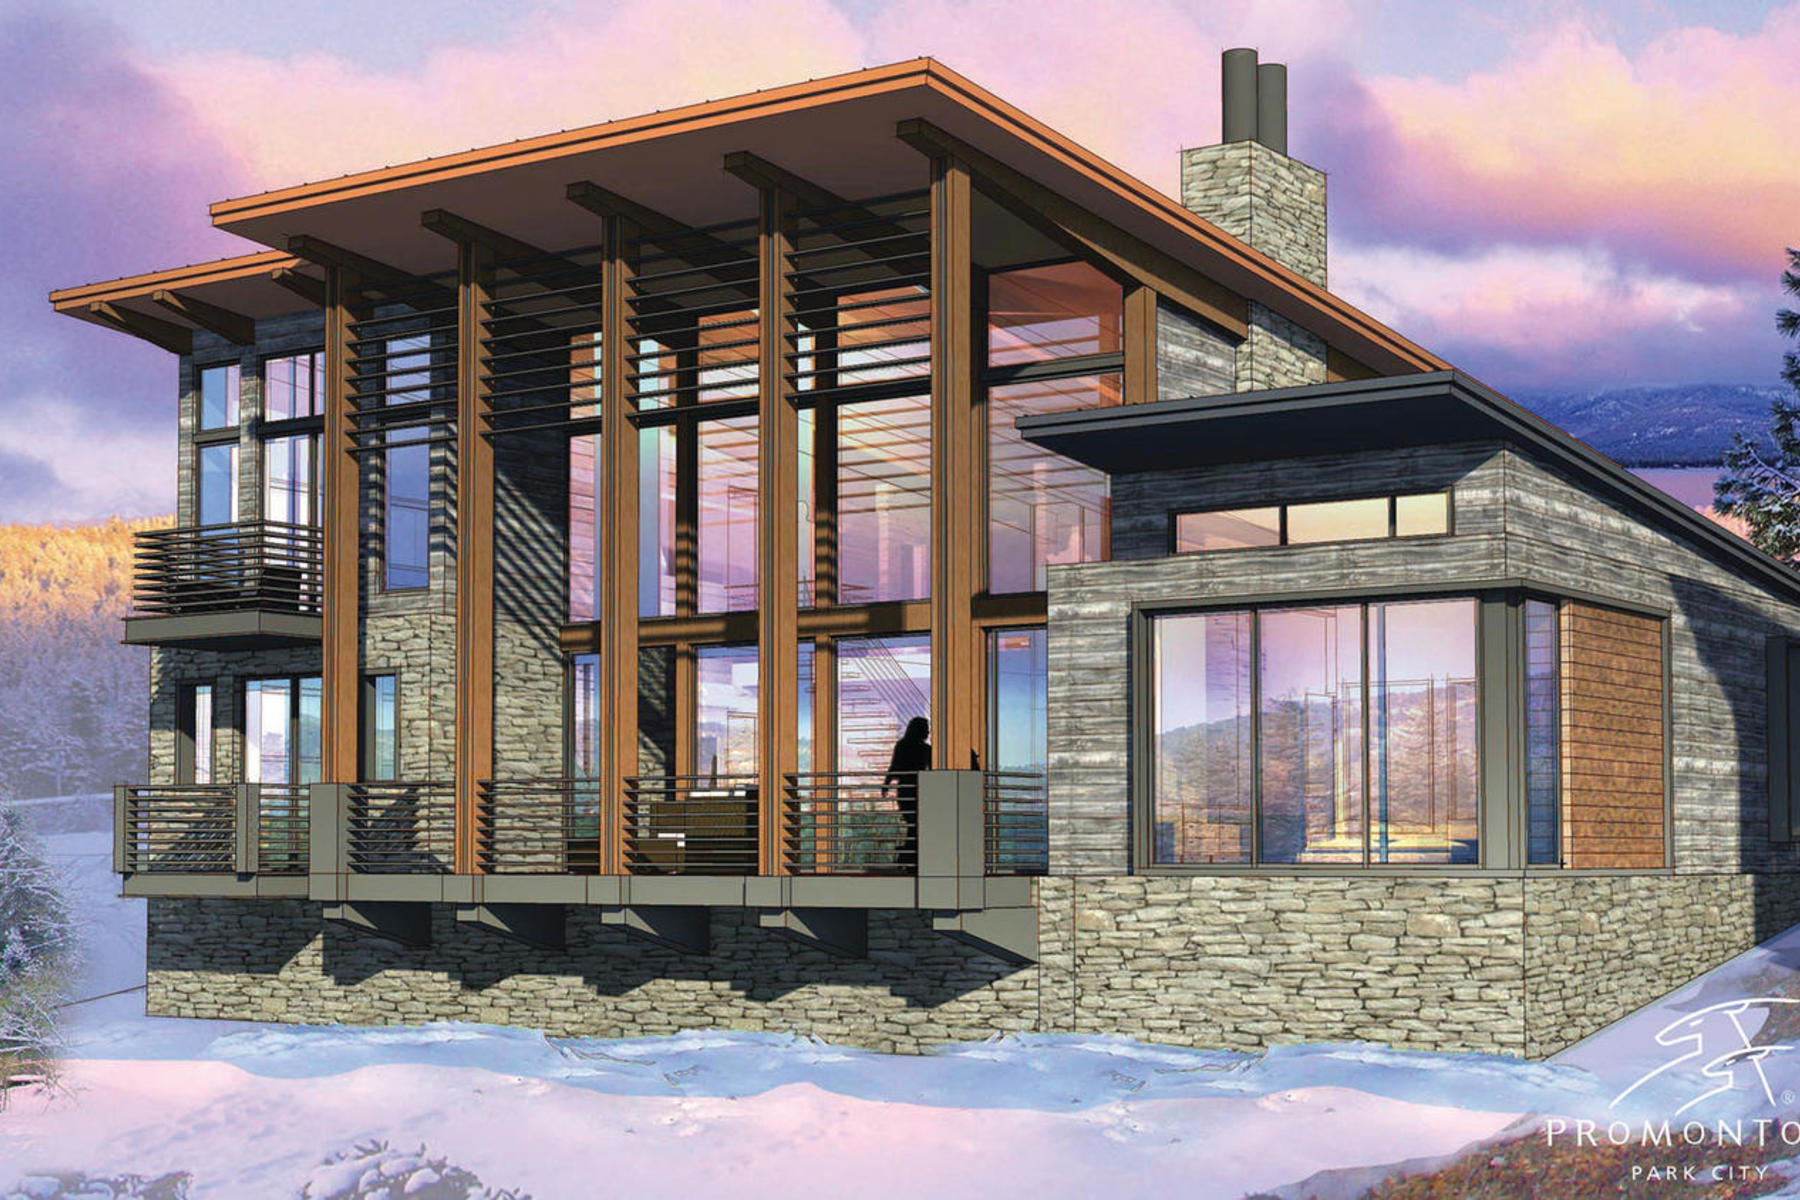 Moradia para Venda às New Nicklaus Golf Cabin Promontory 6594 Golden Bear Lp West Park City, Utah, 84098 Estados Unidos